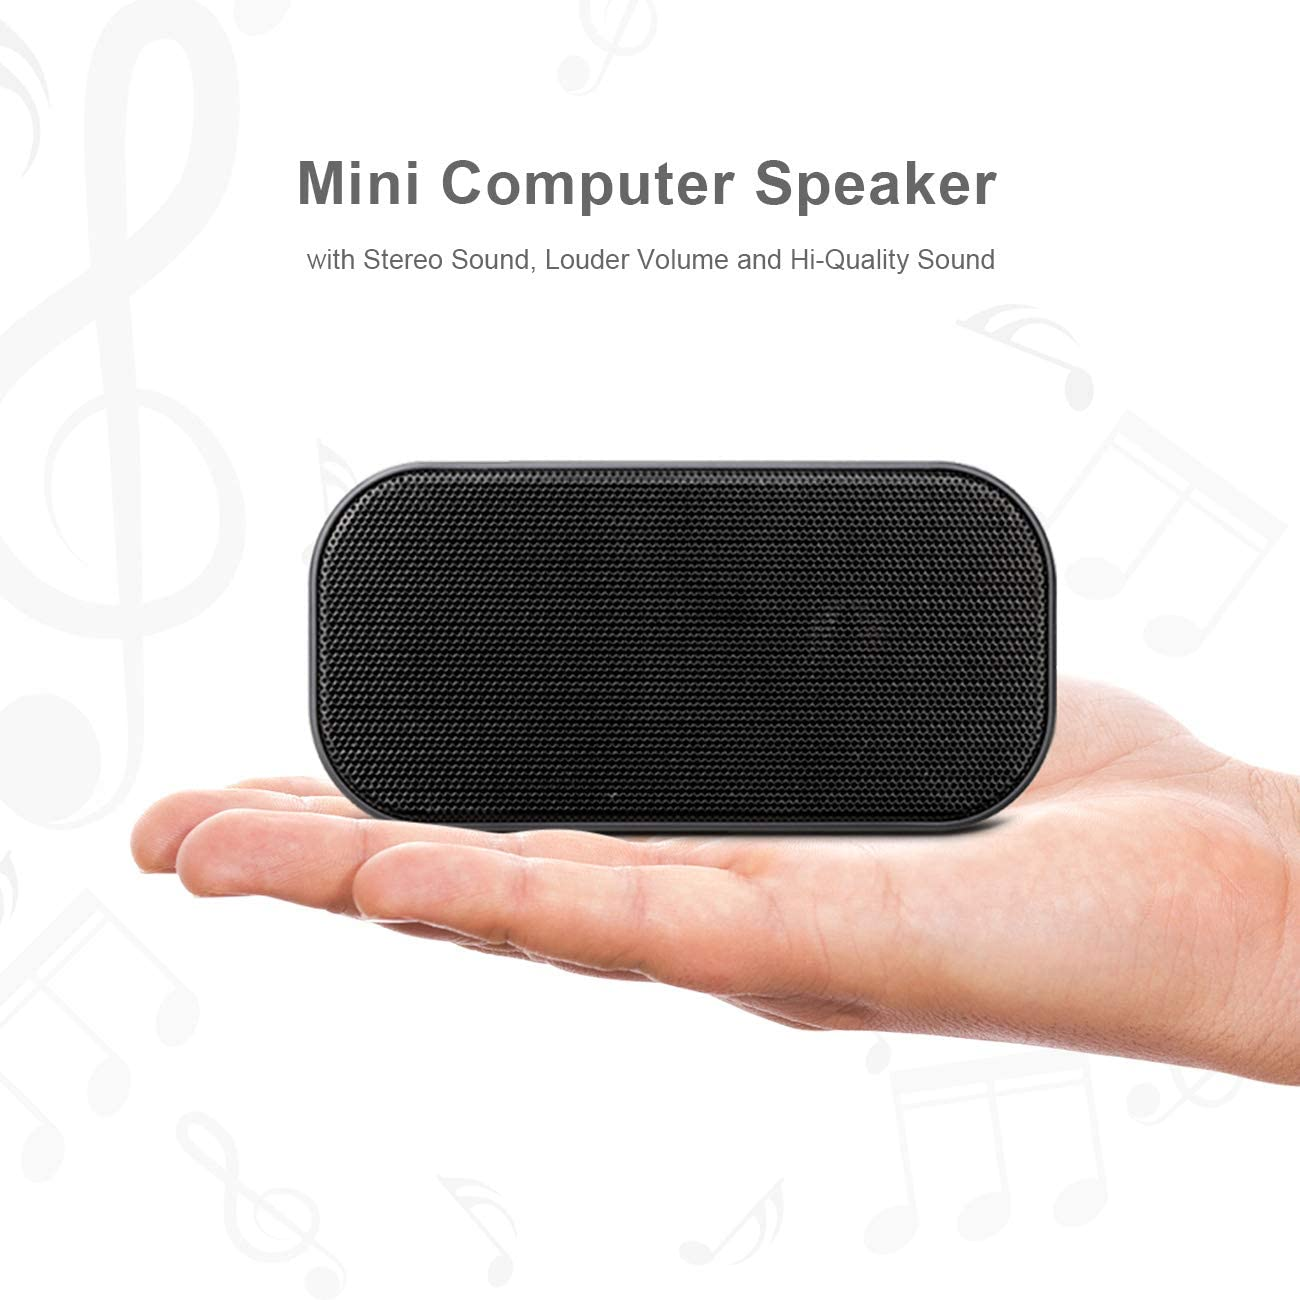 PC Mini Speakers for Desktop and Laptop USB Powered Laptop Speaker with Stereo Sound /& Enhanced Bass USB Computer Speakers 2021 Upgraded